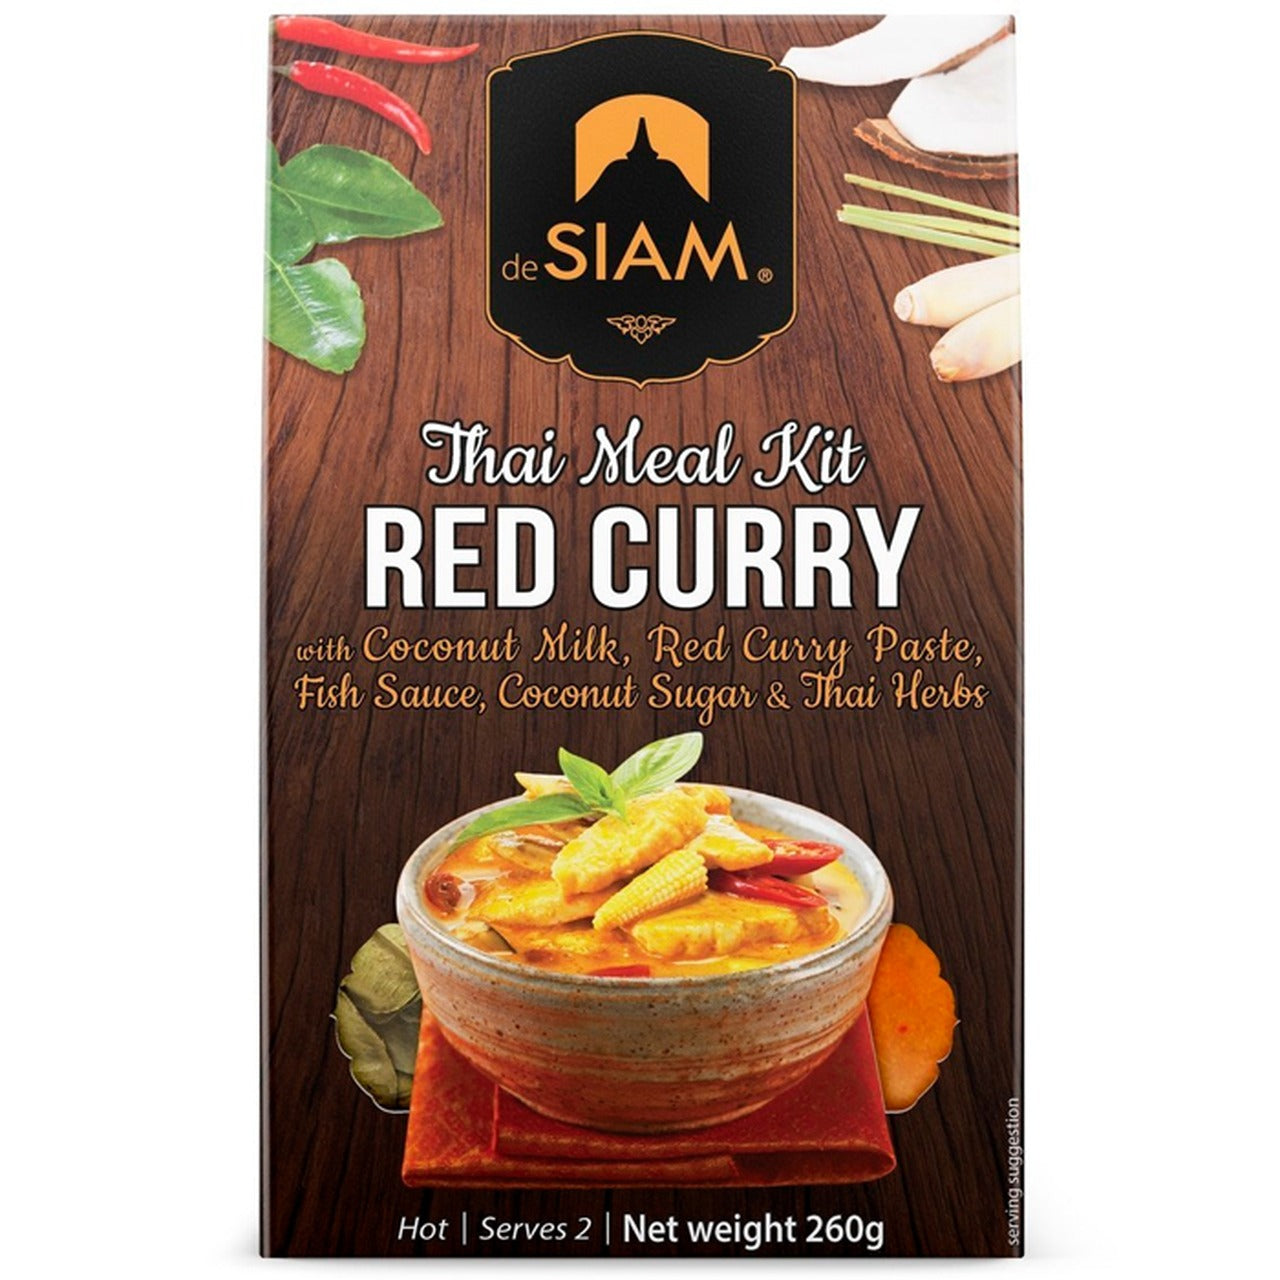 Red Curry Meal Kit